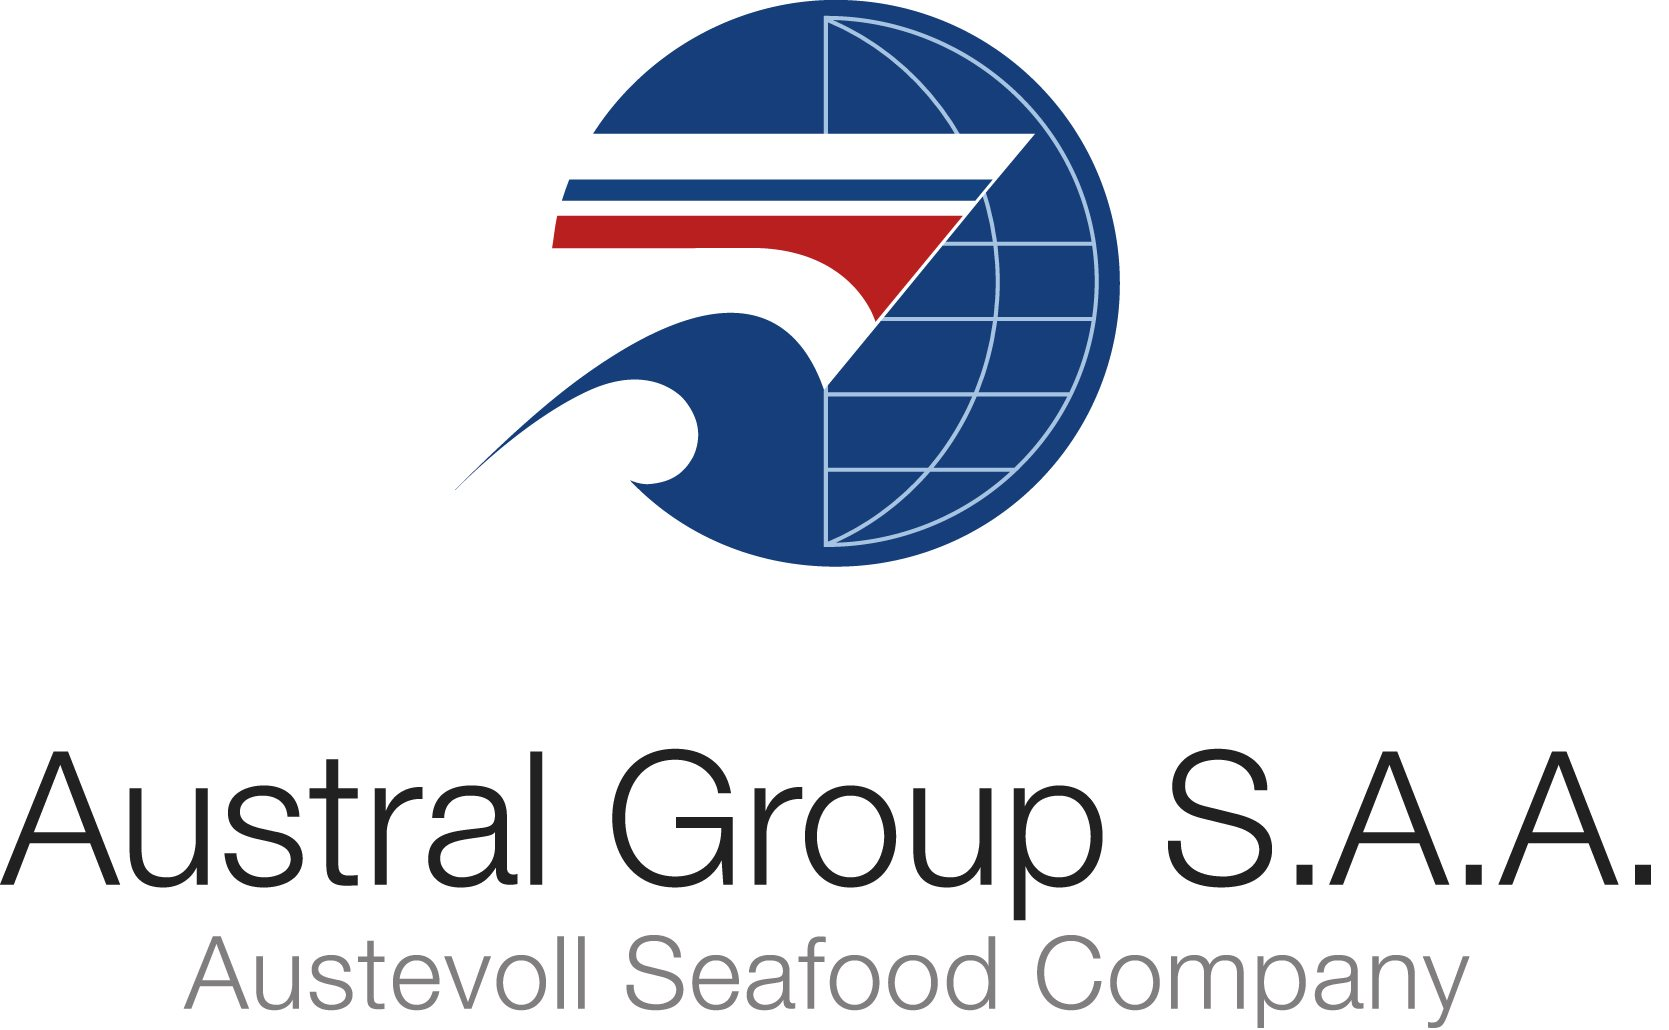 Austral Group S.A.A.